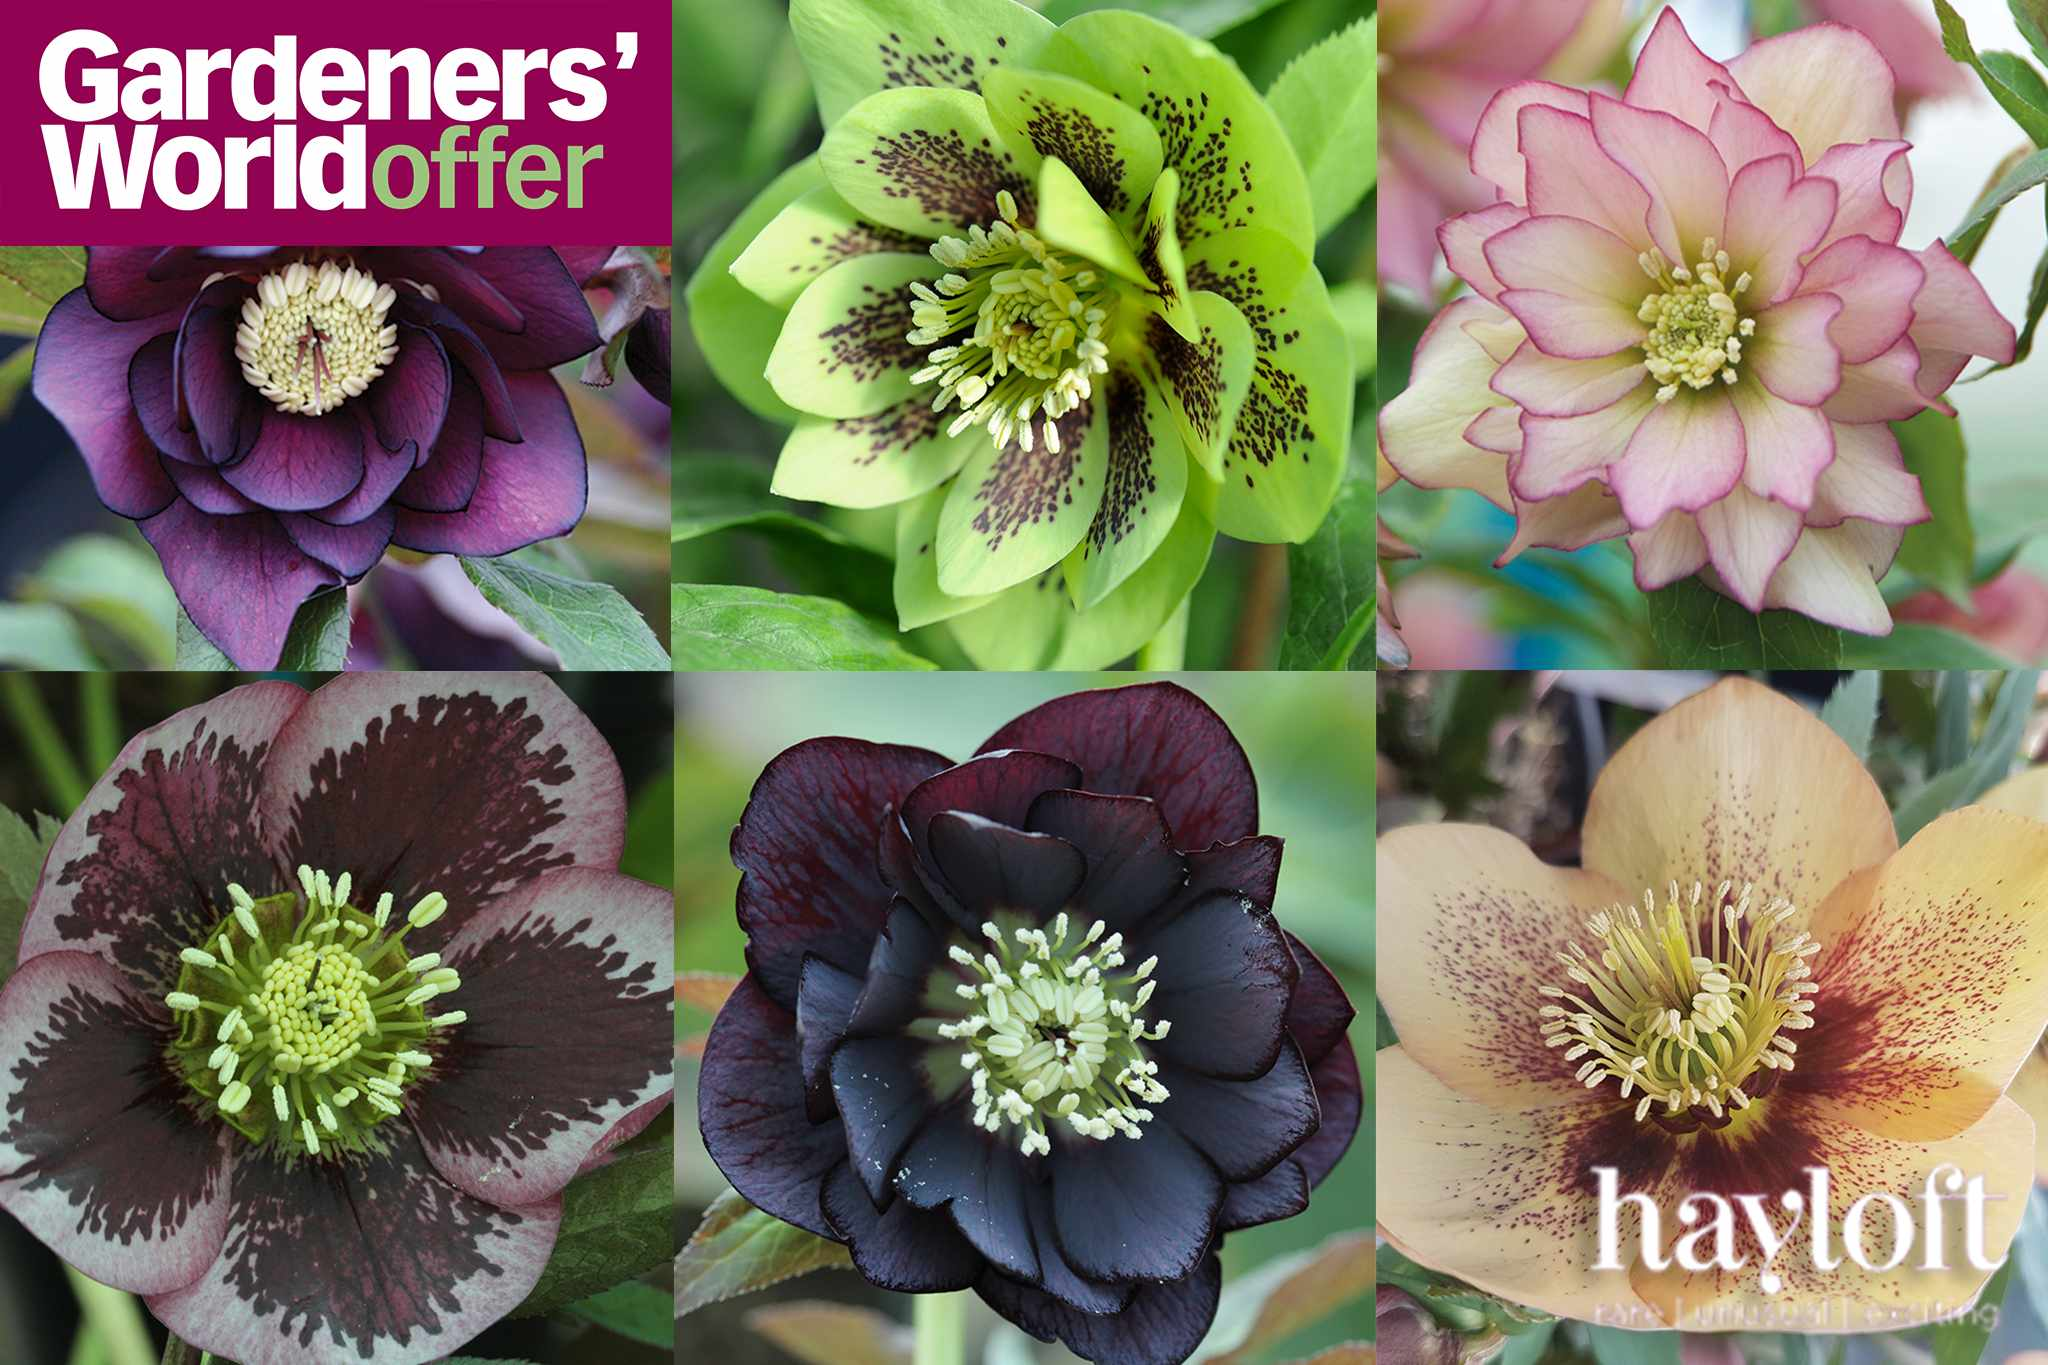 Save £27 on mixed collection of hellebores from Hayloft